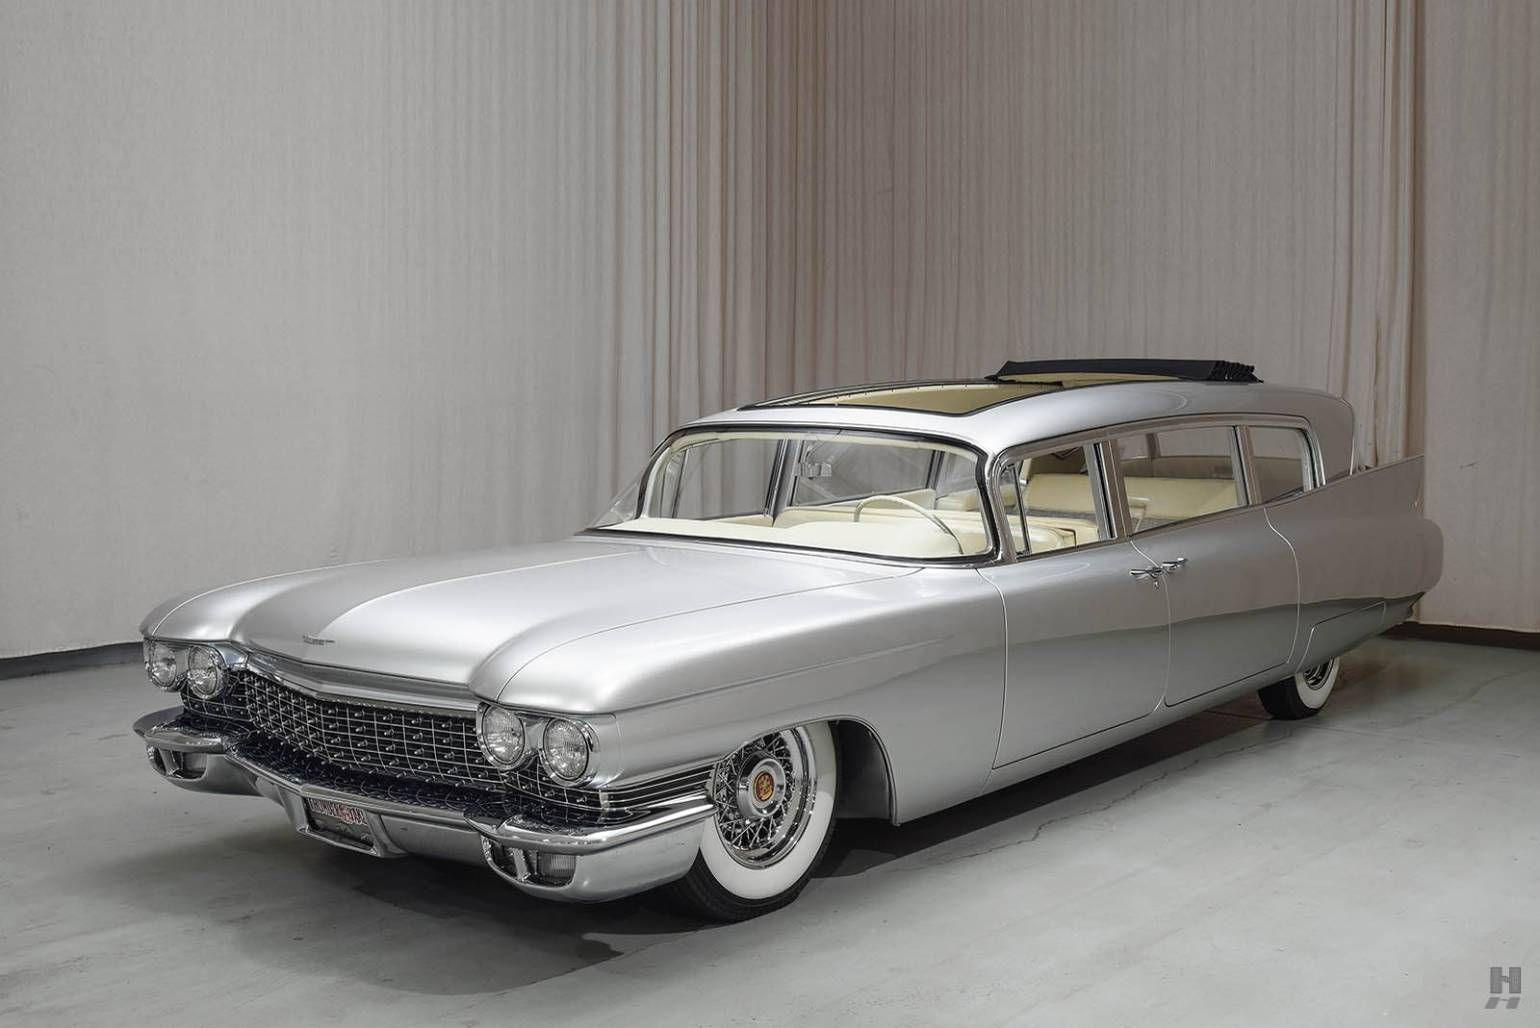 1960 Cadillac Fleetwood Limo for sale